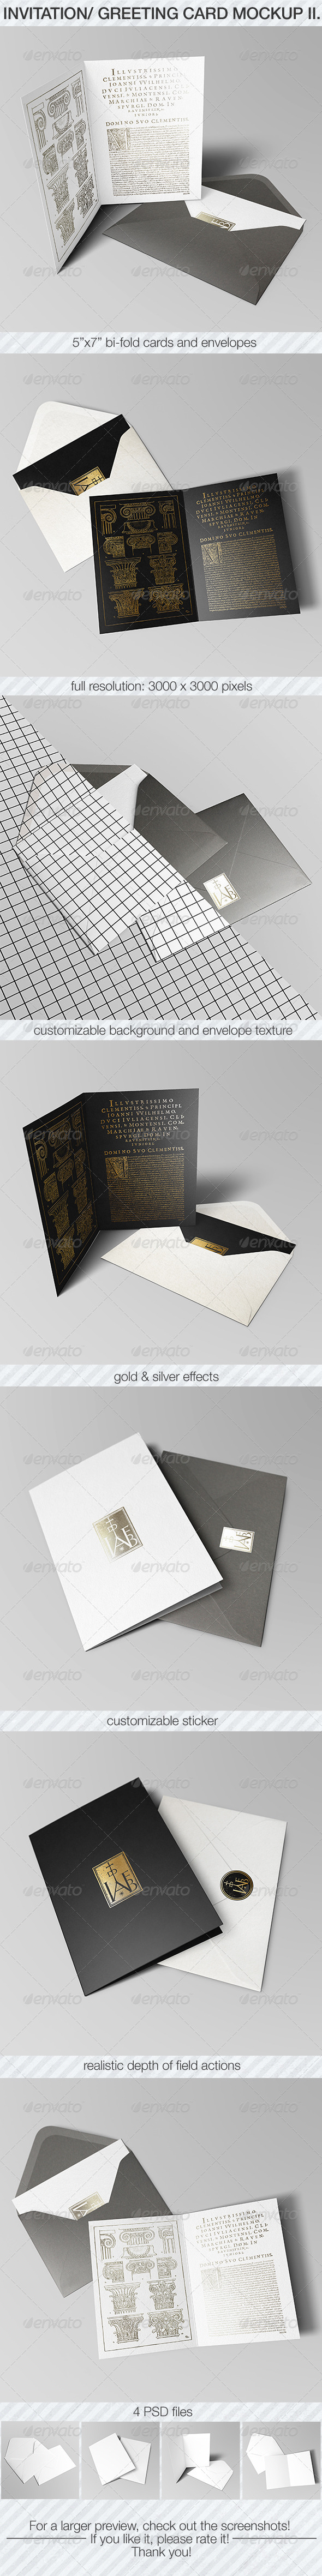 GraphicRiver Invitation & Greeting Card Mockup Pack II 6933971